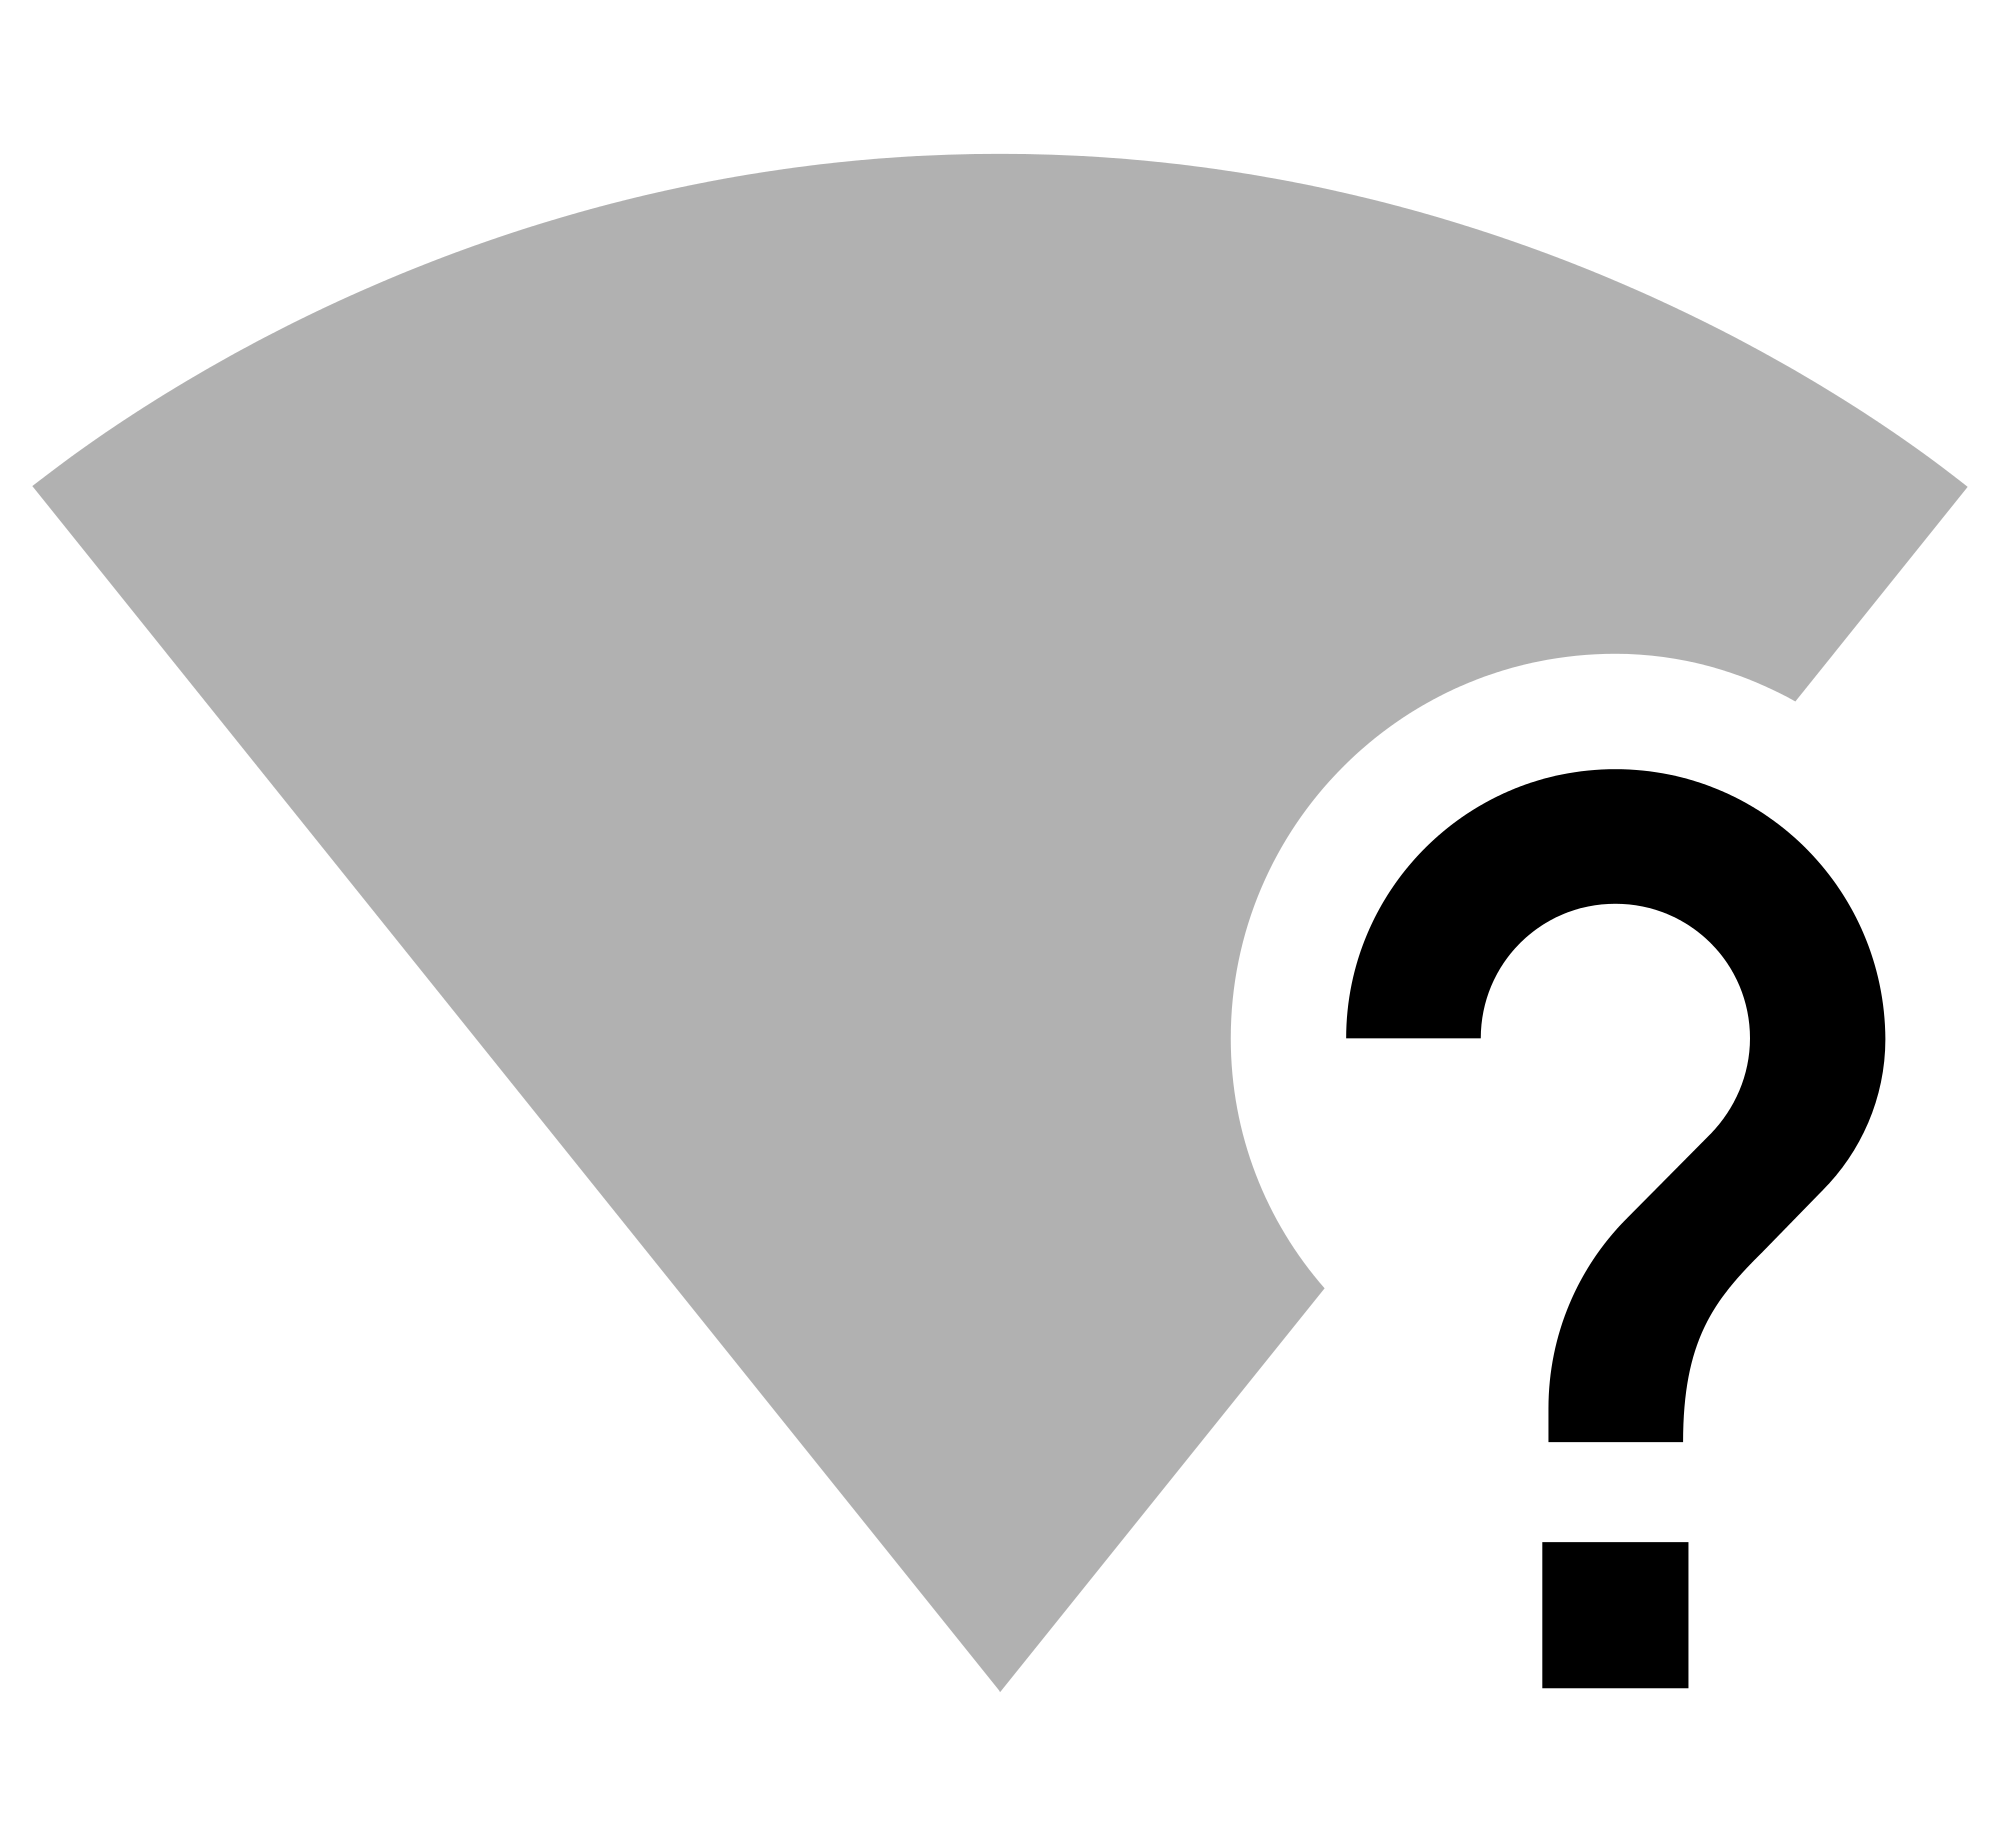 File:Ic signal wifi statusbar not connected 26x24px.svg.